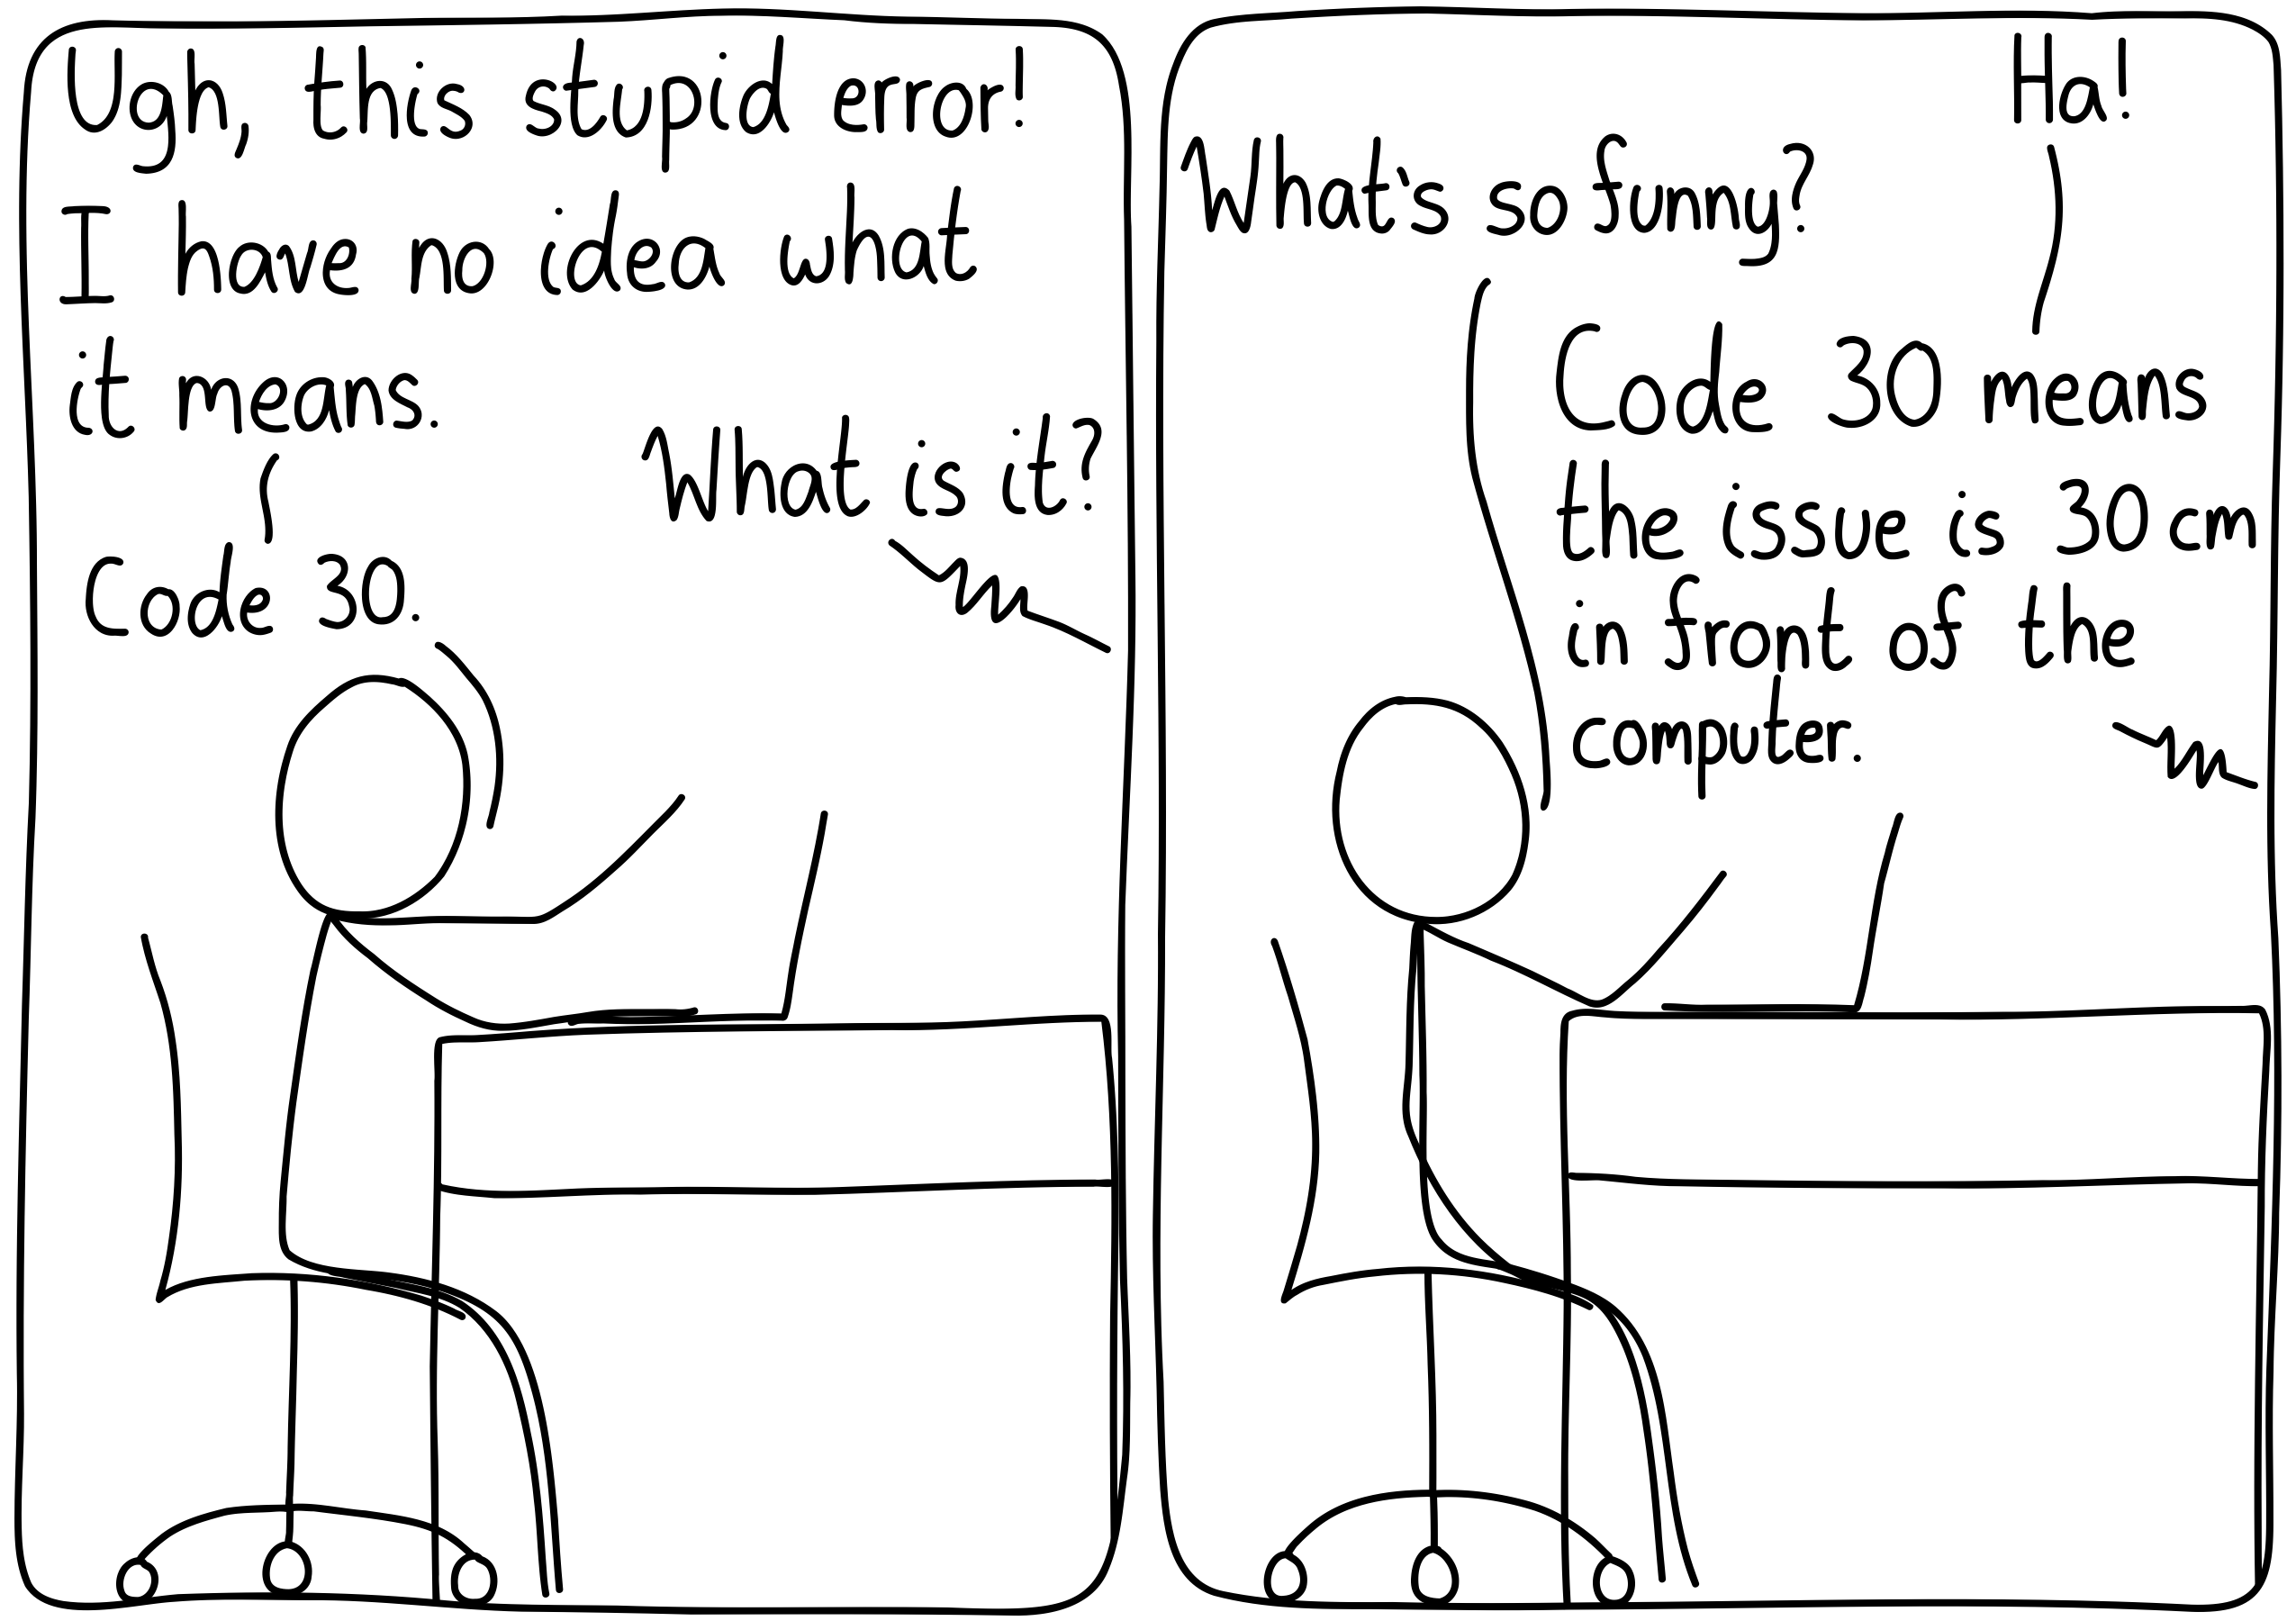 """Left panel: """"Ugh, this stupid error! I have no idea what it means."""" """"What is it?"""" """"Code 30."""" Right panel: """"Ha!"""" """"What's so funny?"""" """"Code 30 means that the issue is 30 cm in front of the computer."""""""